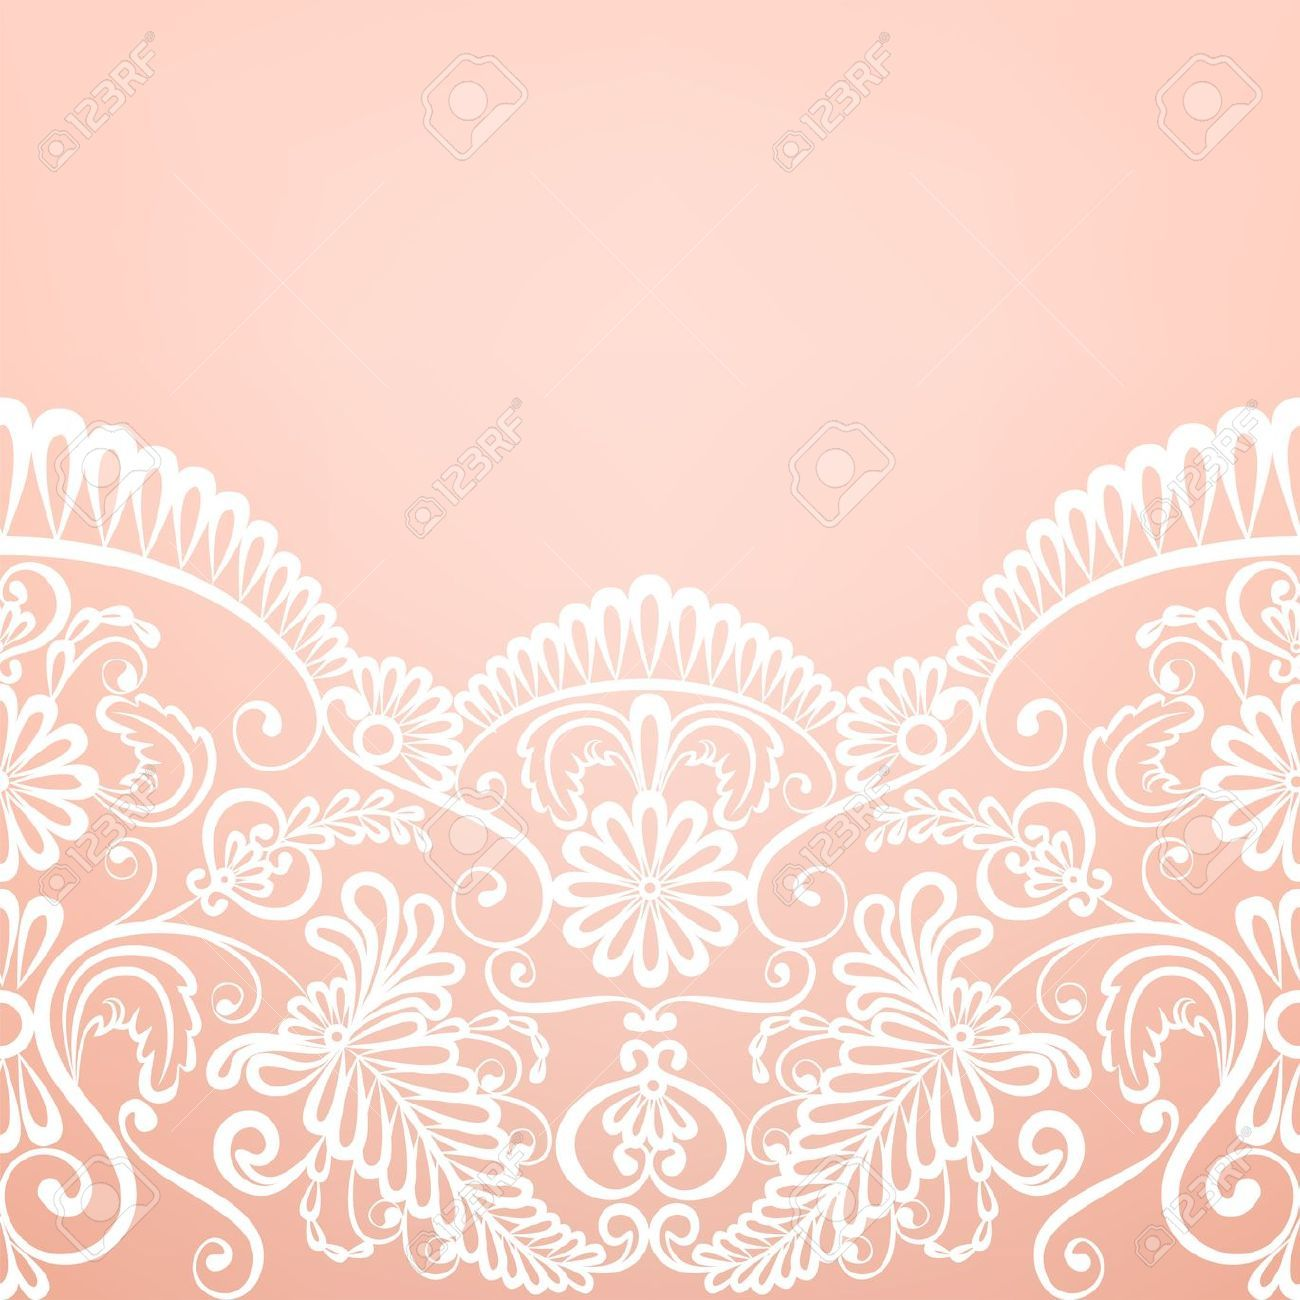 template for wedding invitation or greeting card with With lace fabric wedding invitations